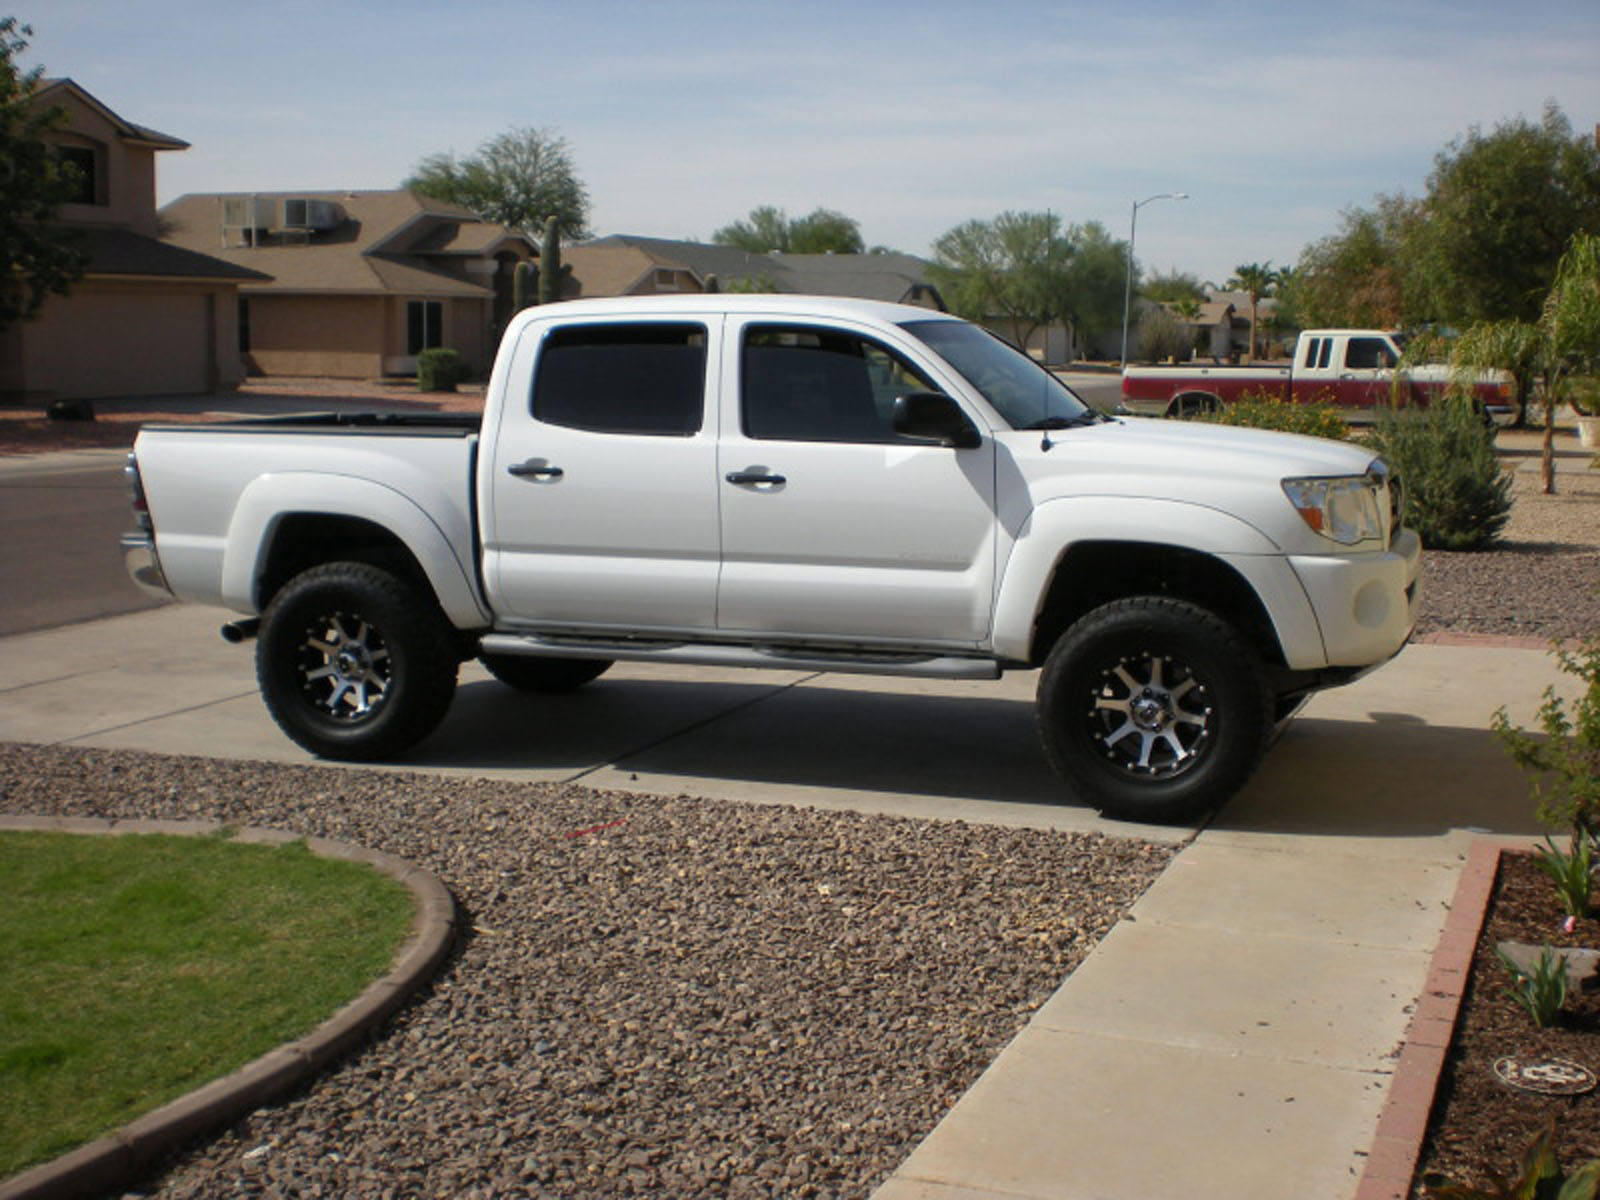 2005 toyota tacoma double cab trd for sale peoria arizona. Black Bedroom Furniture Sets. Home Design Ideas